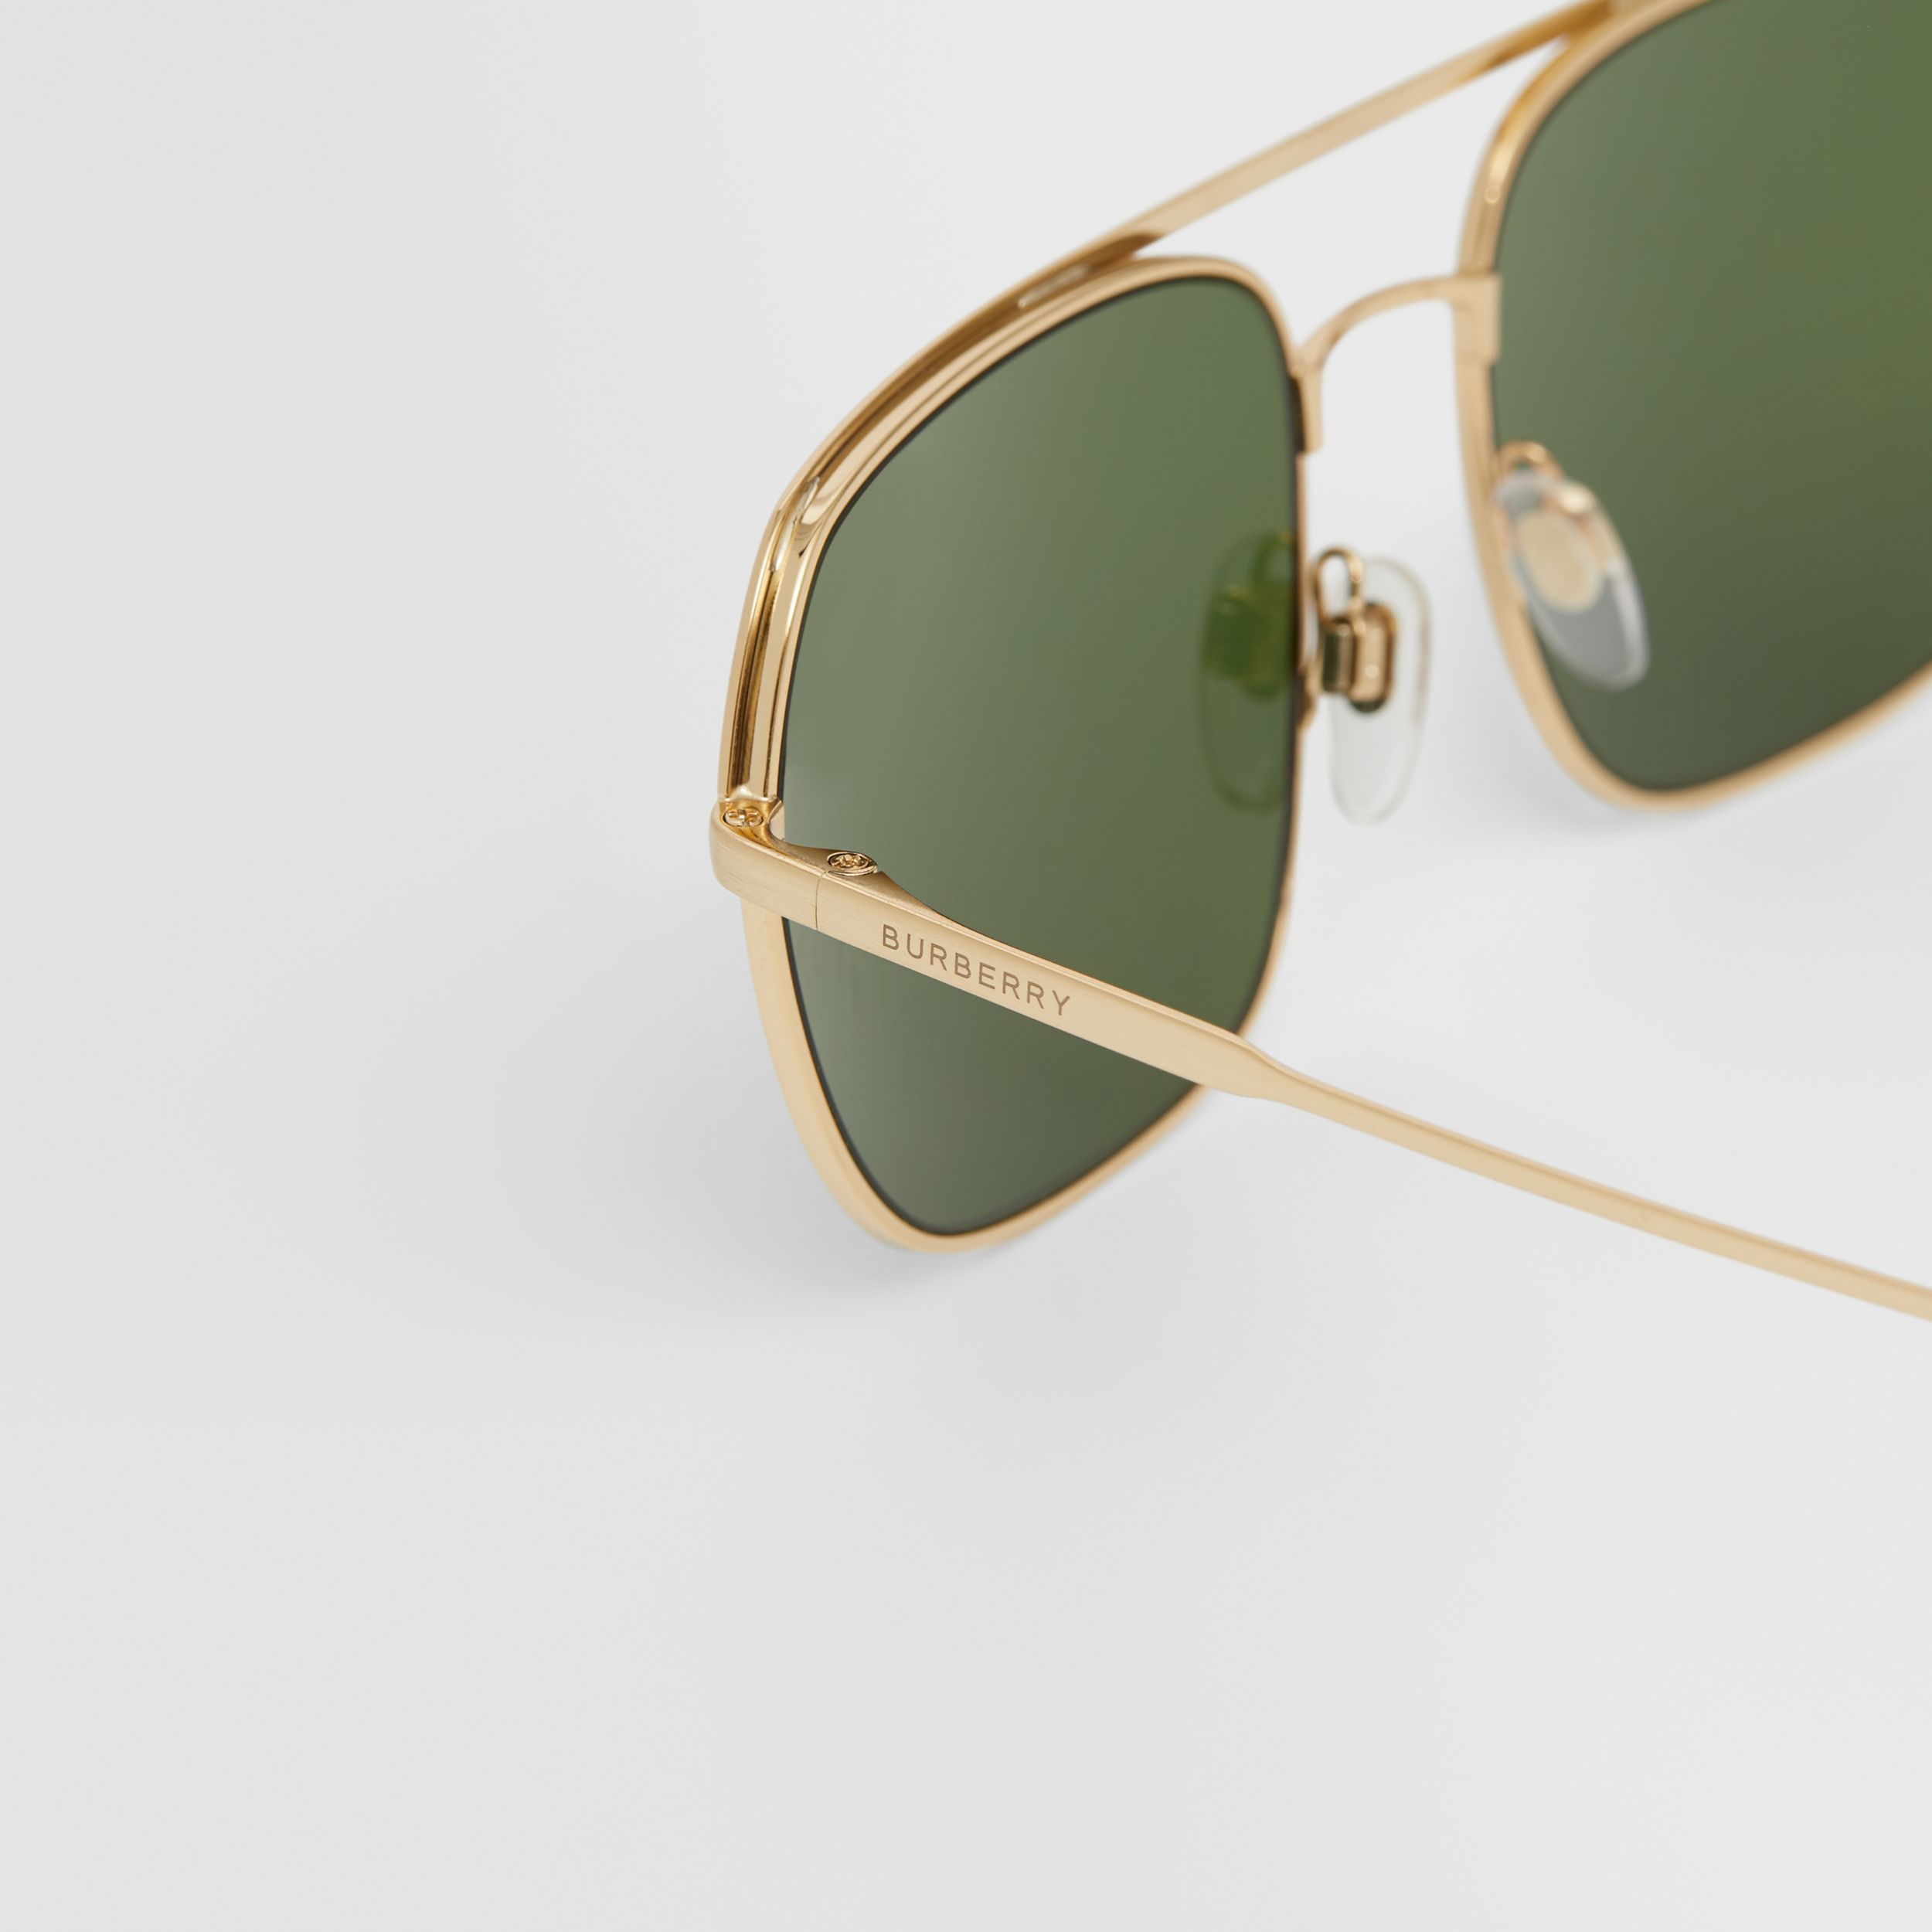 Square Pilot Sunglasses in Vintage Brushed Gold - Men | Burberry - 2